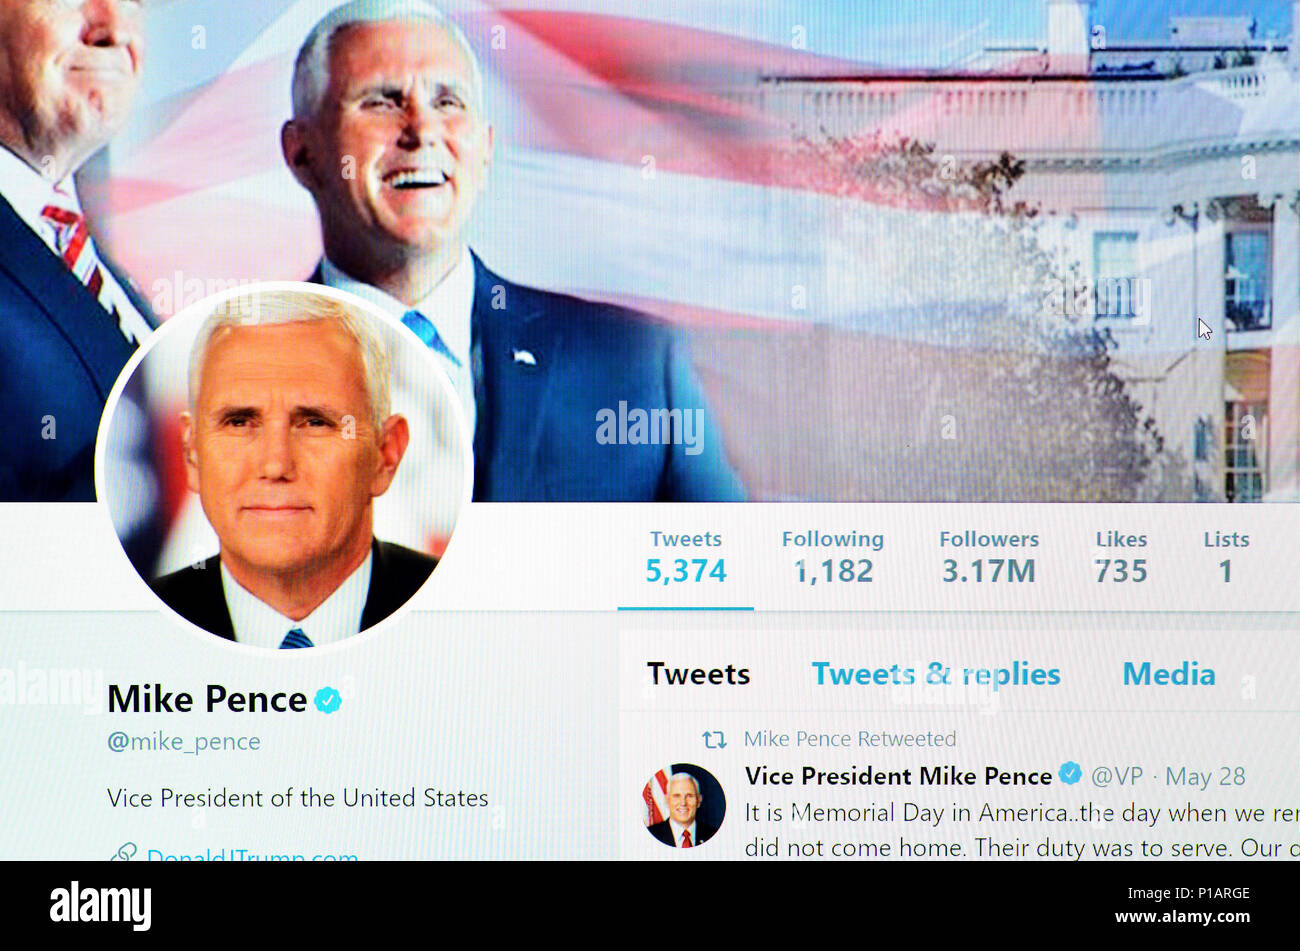 Mike Pence Twitter account home page (June 2018) - Stock Image